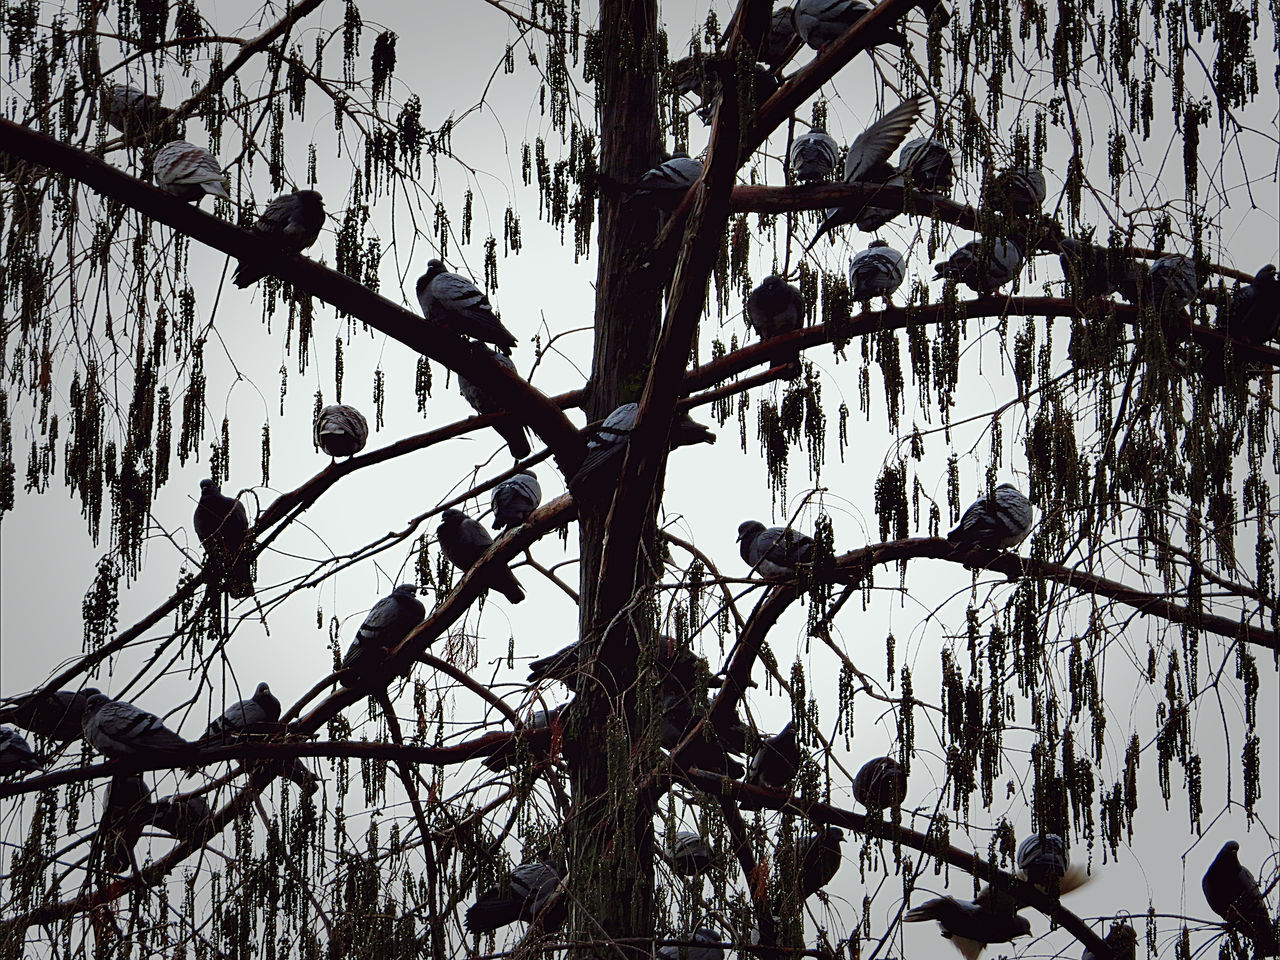 Birds_collection Birds_n_branches Cold Day Outdoors Pigeonslife Tree Silhouette Tree_collection  Wintertime